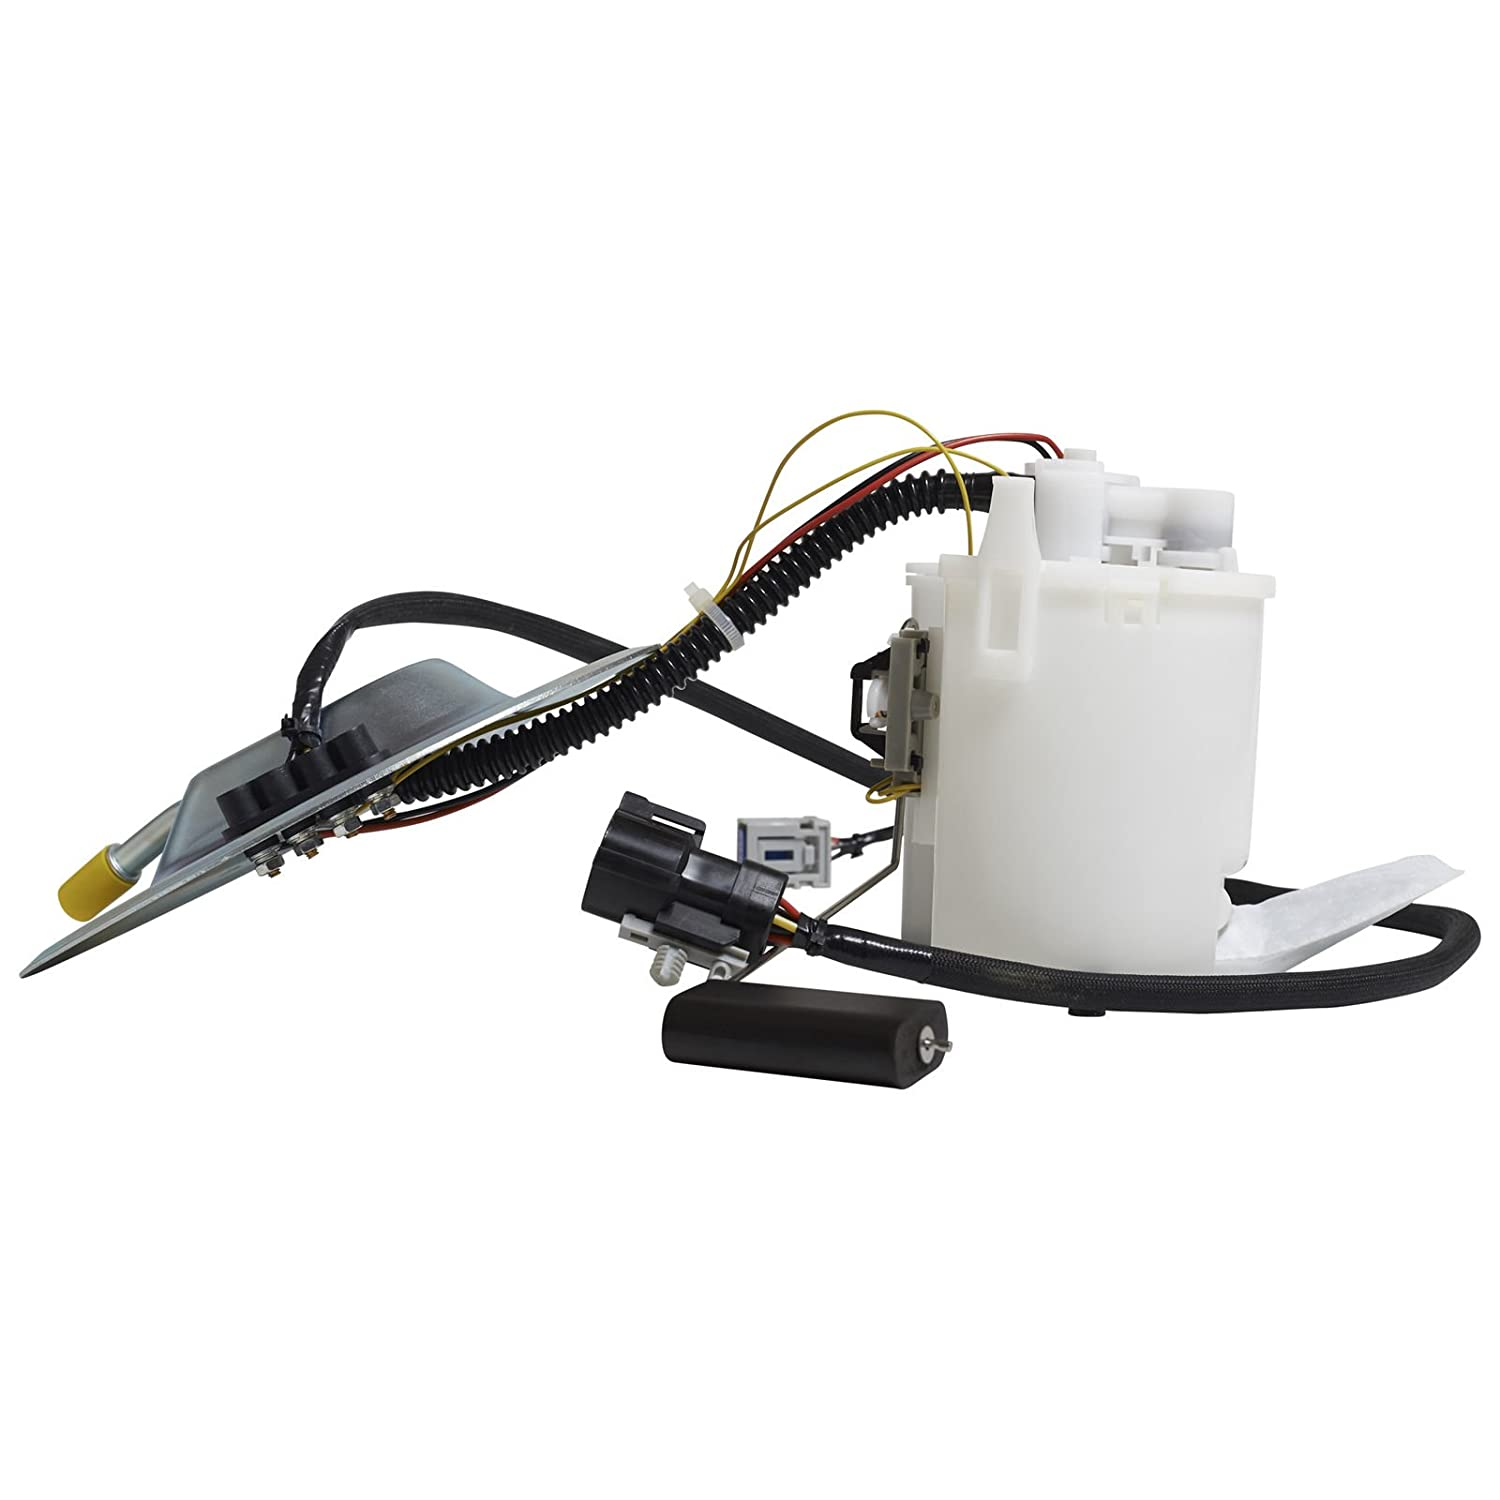 Fuel Pump For 2001 2004 Ford Mustang W Sending Unit Fits 2002 Gt Filter E2301m 1r3z9h307ab 1r3u9h307aa Automotive